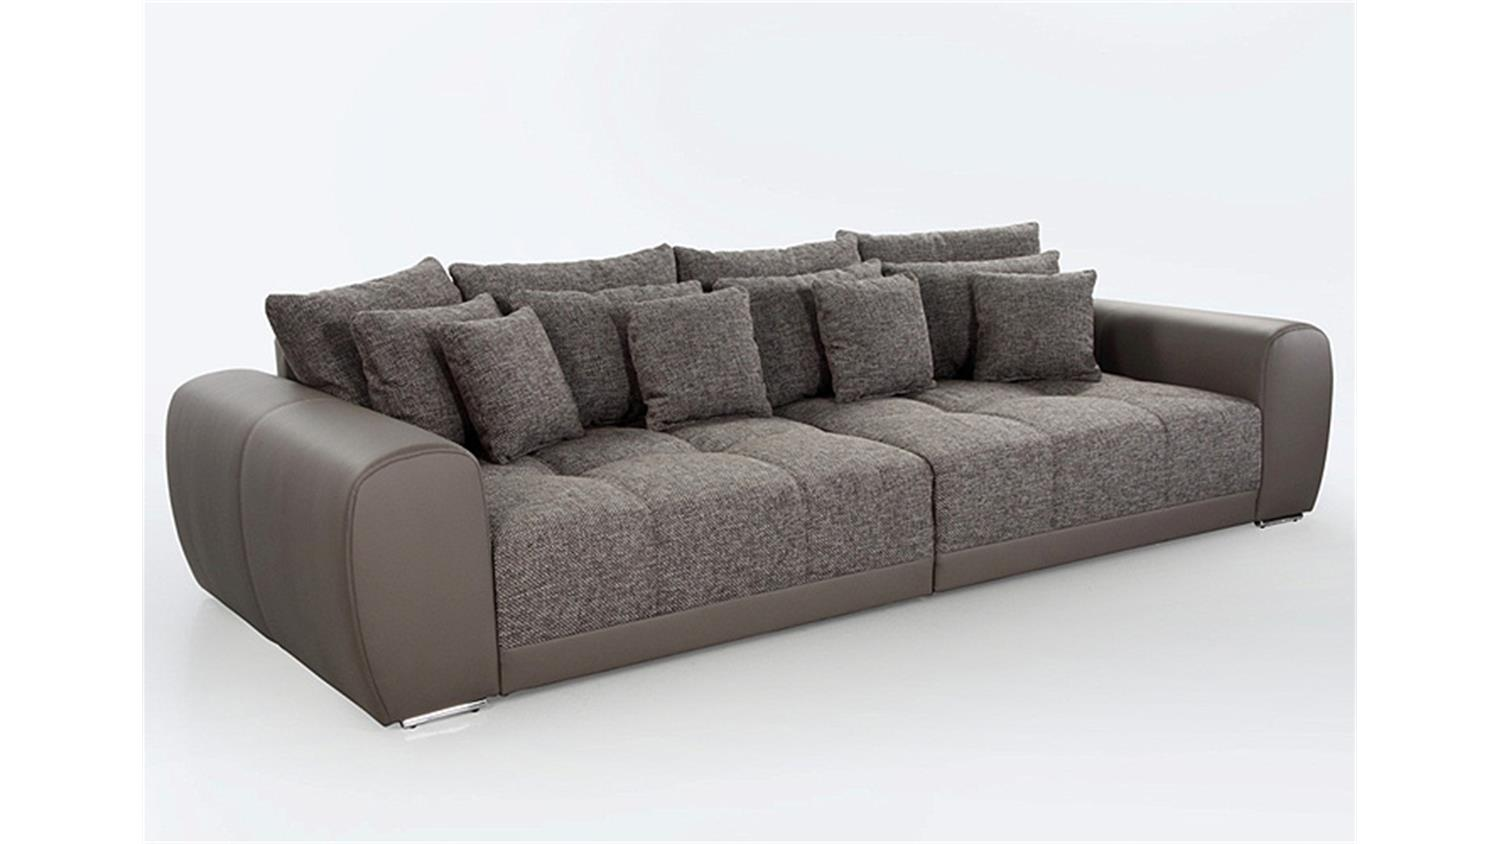 big sofa sam polsterm bel xxl sofa in elefant schlamm 310. Black Bedroom Furniture Sets. Home Design Ideas